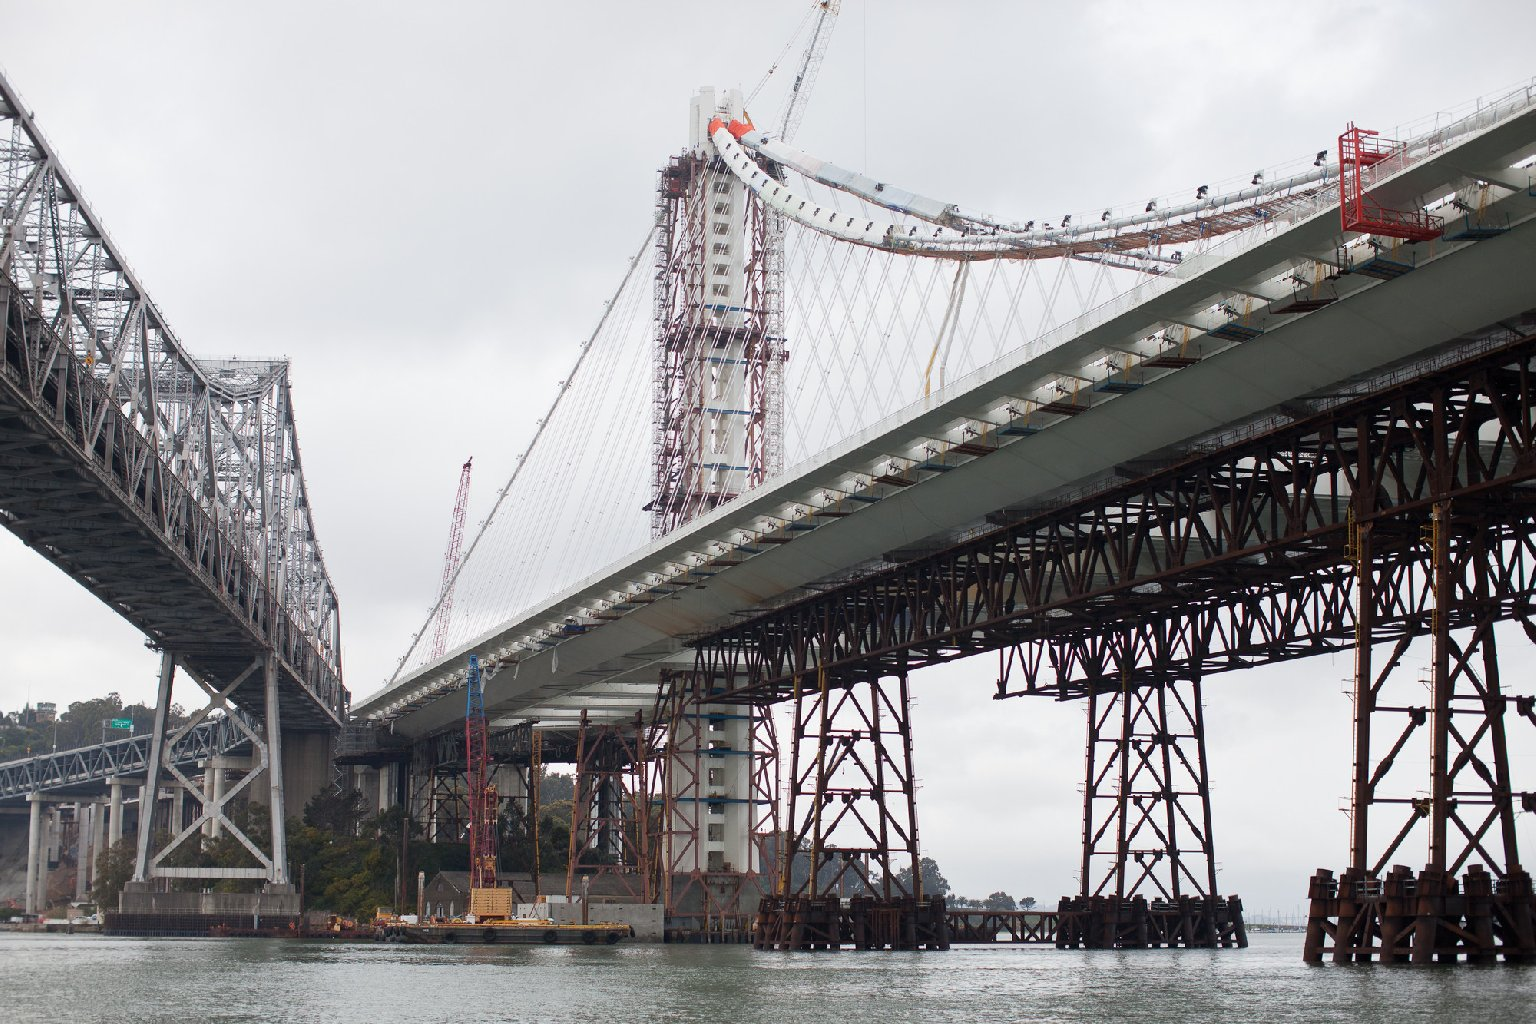 Steel rods on the new eastern span of the Oakland-San Francisco Bay bridge were found to be broken when engineers returned to check the nuts they tightened earlier. File photo. (Deborah Svoboda/KQED)